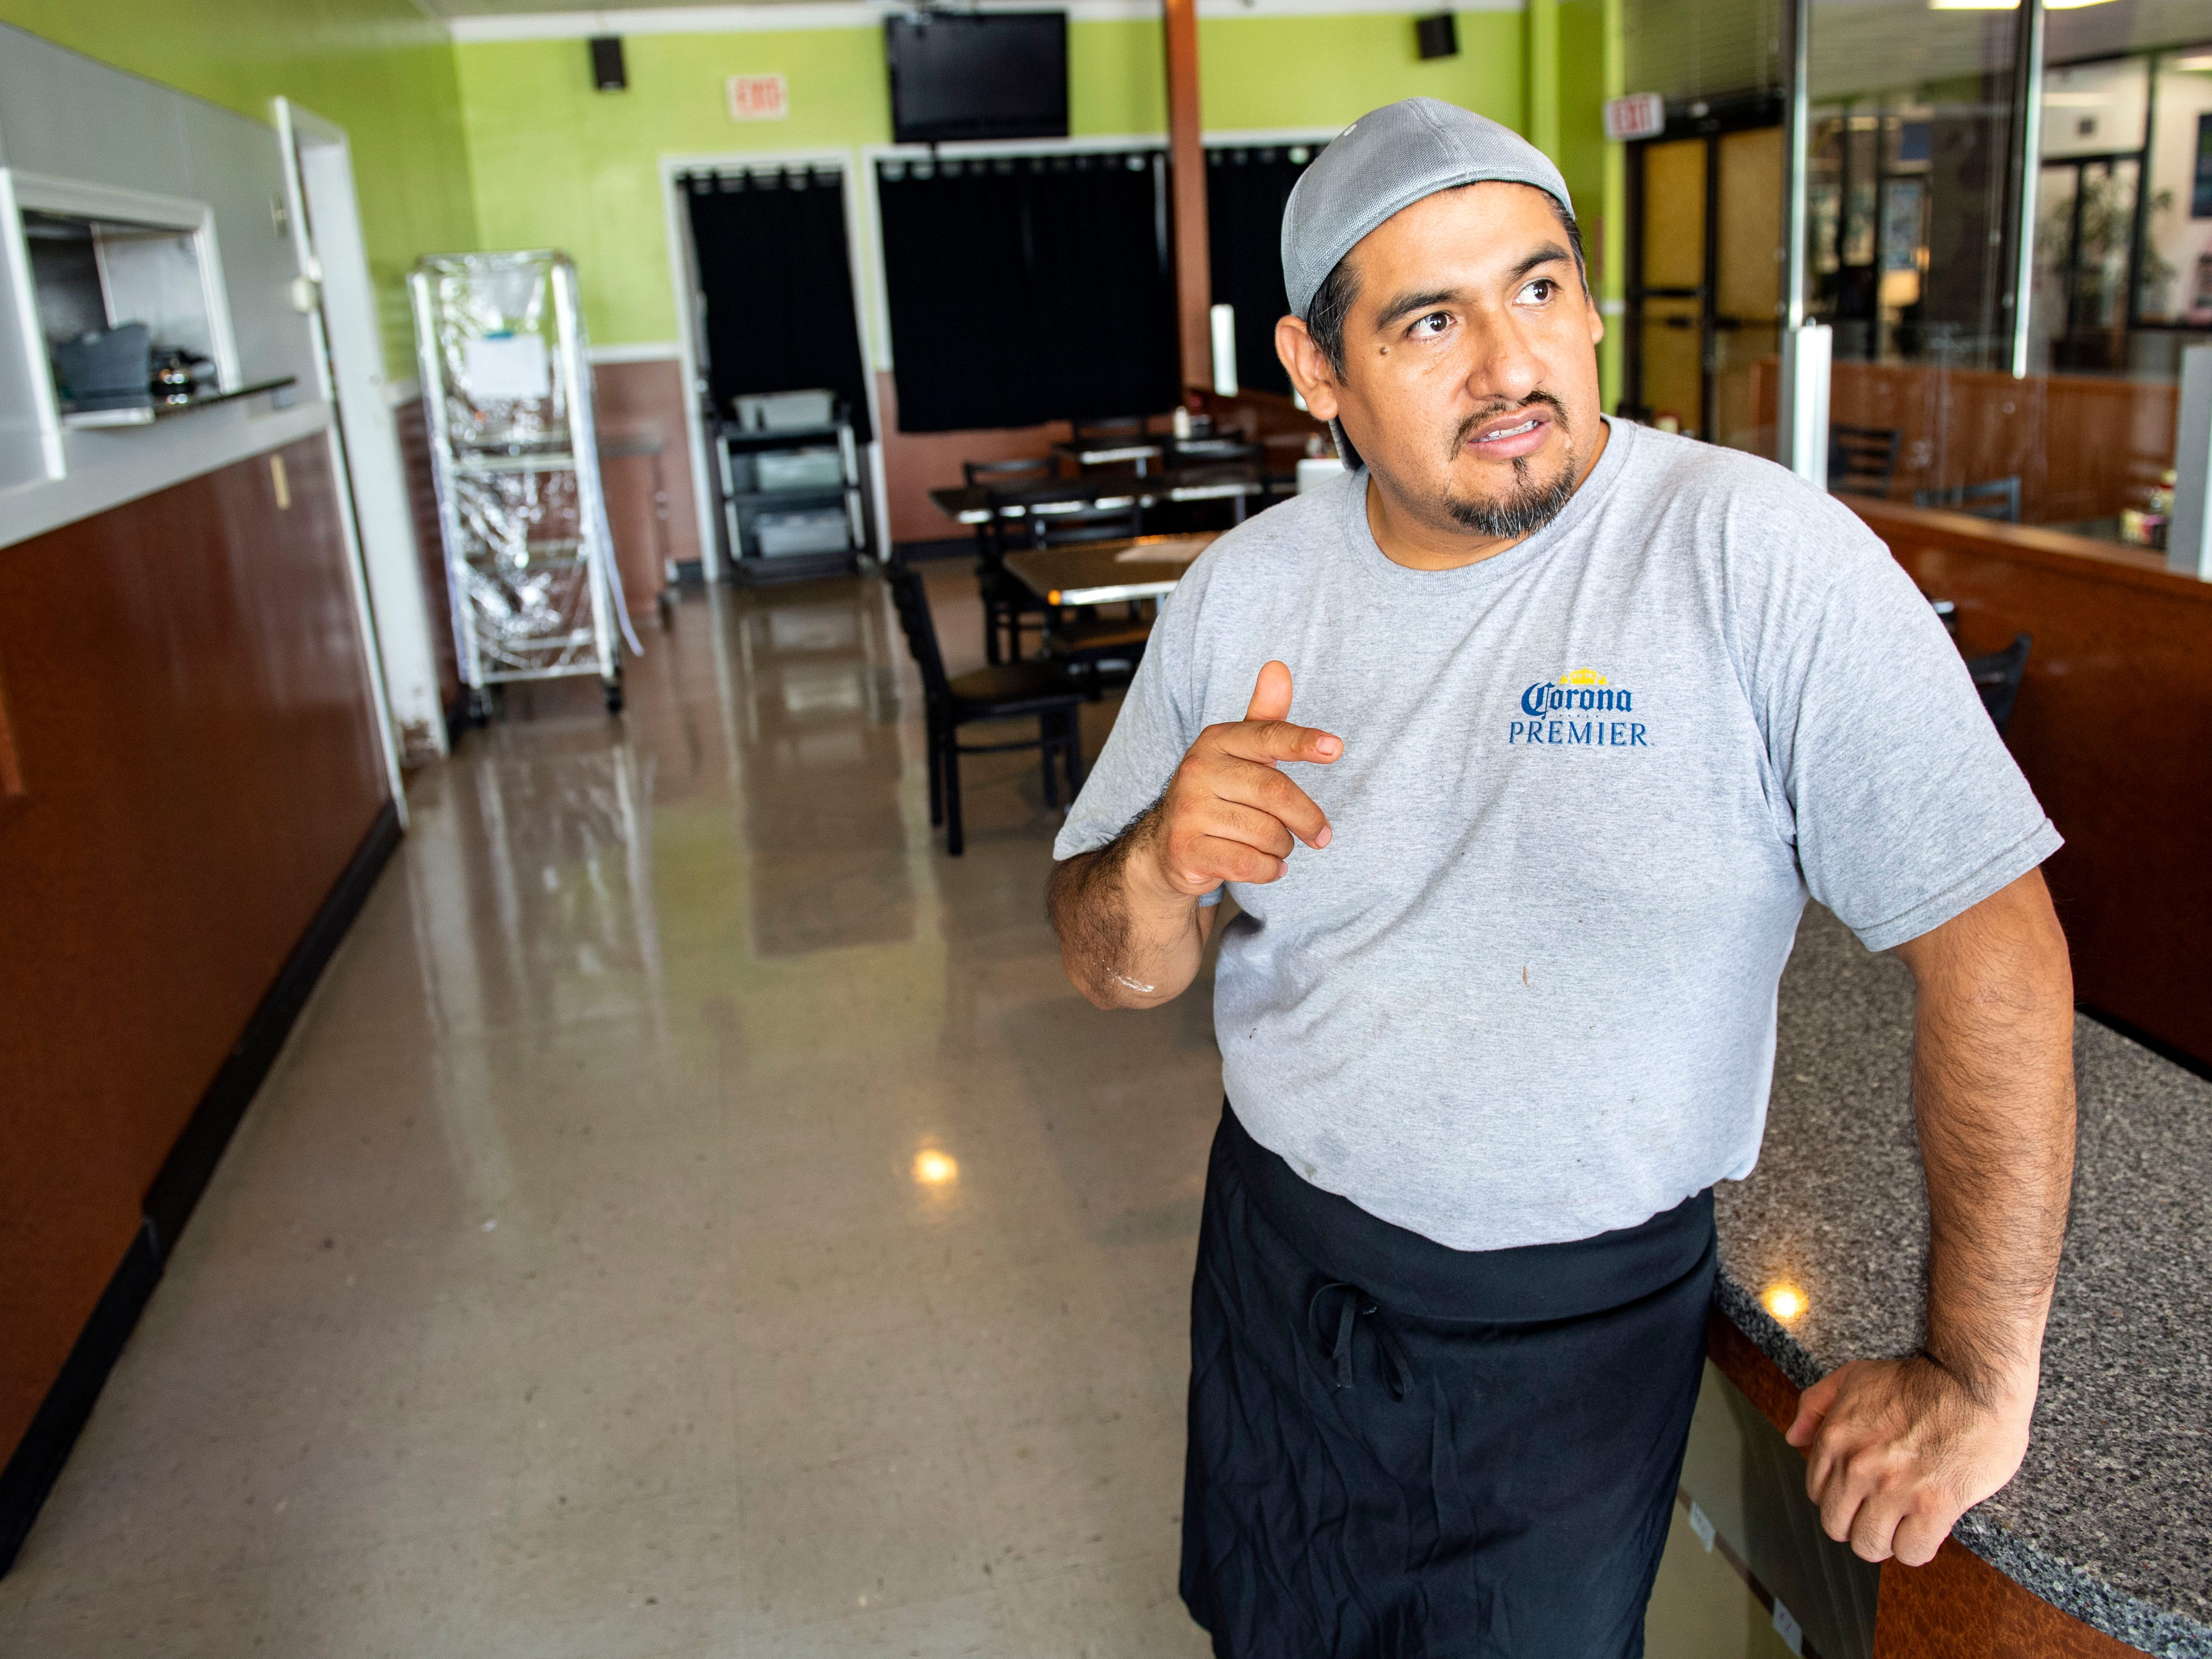 Aurora's Bakery opened in July 2018, owned and operated by Mexican immigrants Anselmo Arrieta (pictured) and his wife Guadelupe Rosete. The pair met in New York City, and moved to York in 2002 to 'chase the American Dream.'